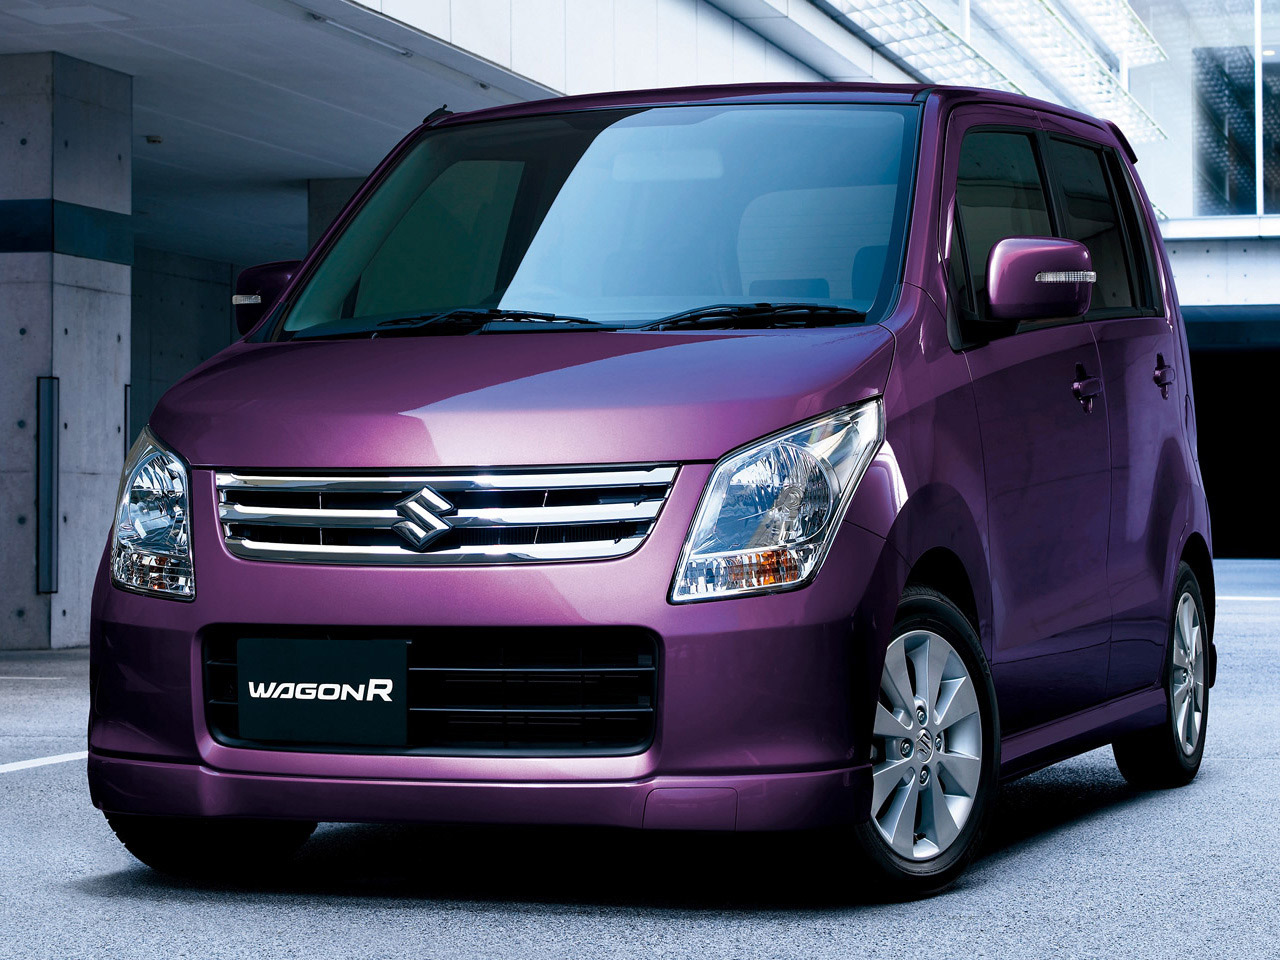 suzuki wagon r 2009 review amazing pictures and images. Black Bedroom Furniture Sets. Home Design Ideas